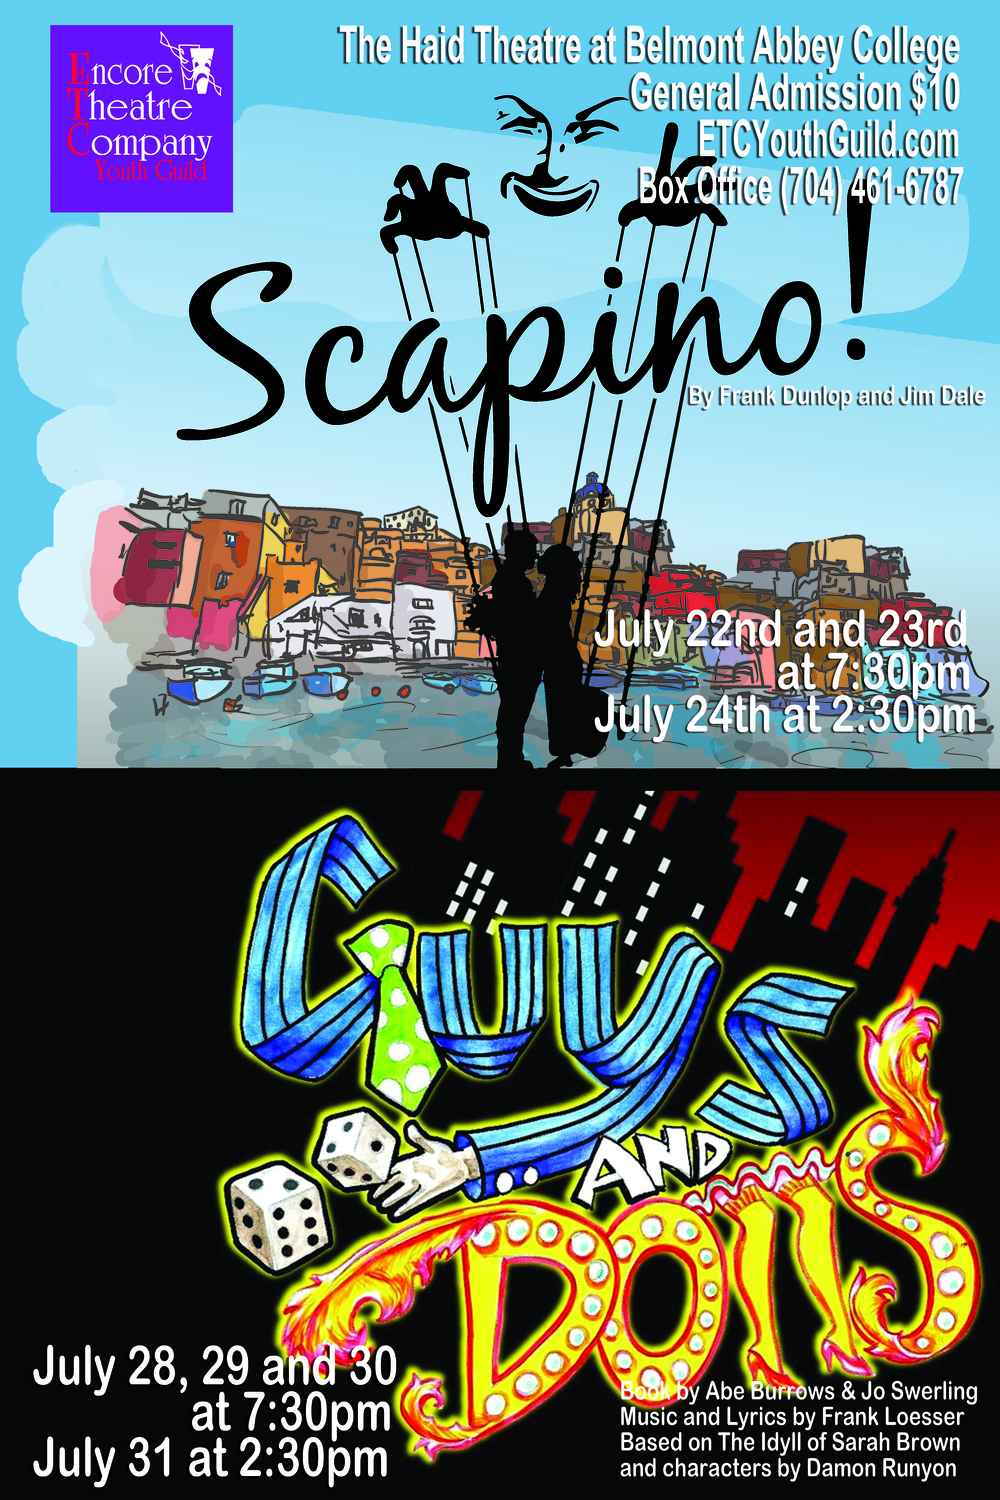 scapino and Guys and Dolls composite poster.jpg